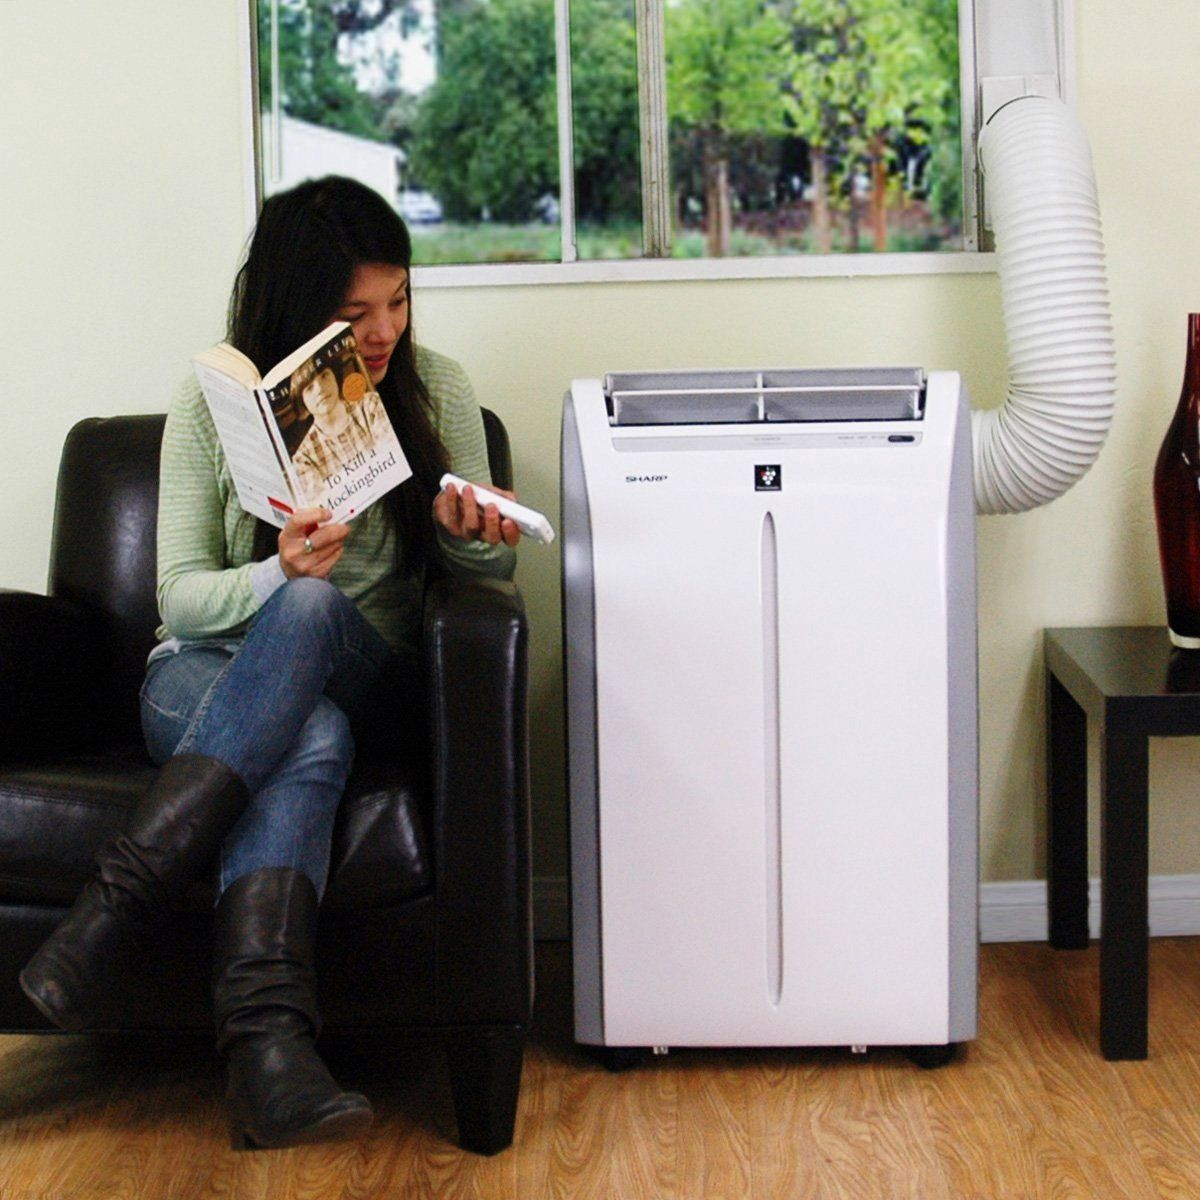 The Sharp Portabale Air Conditioner For User Air Conditioning Services Home Goods Decor